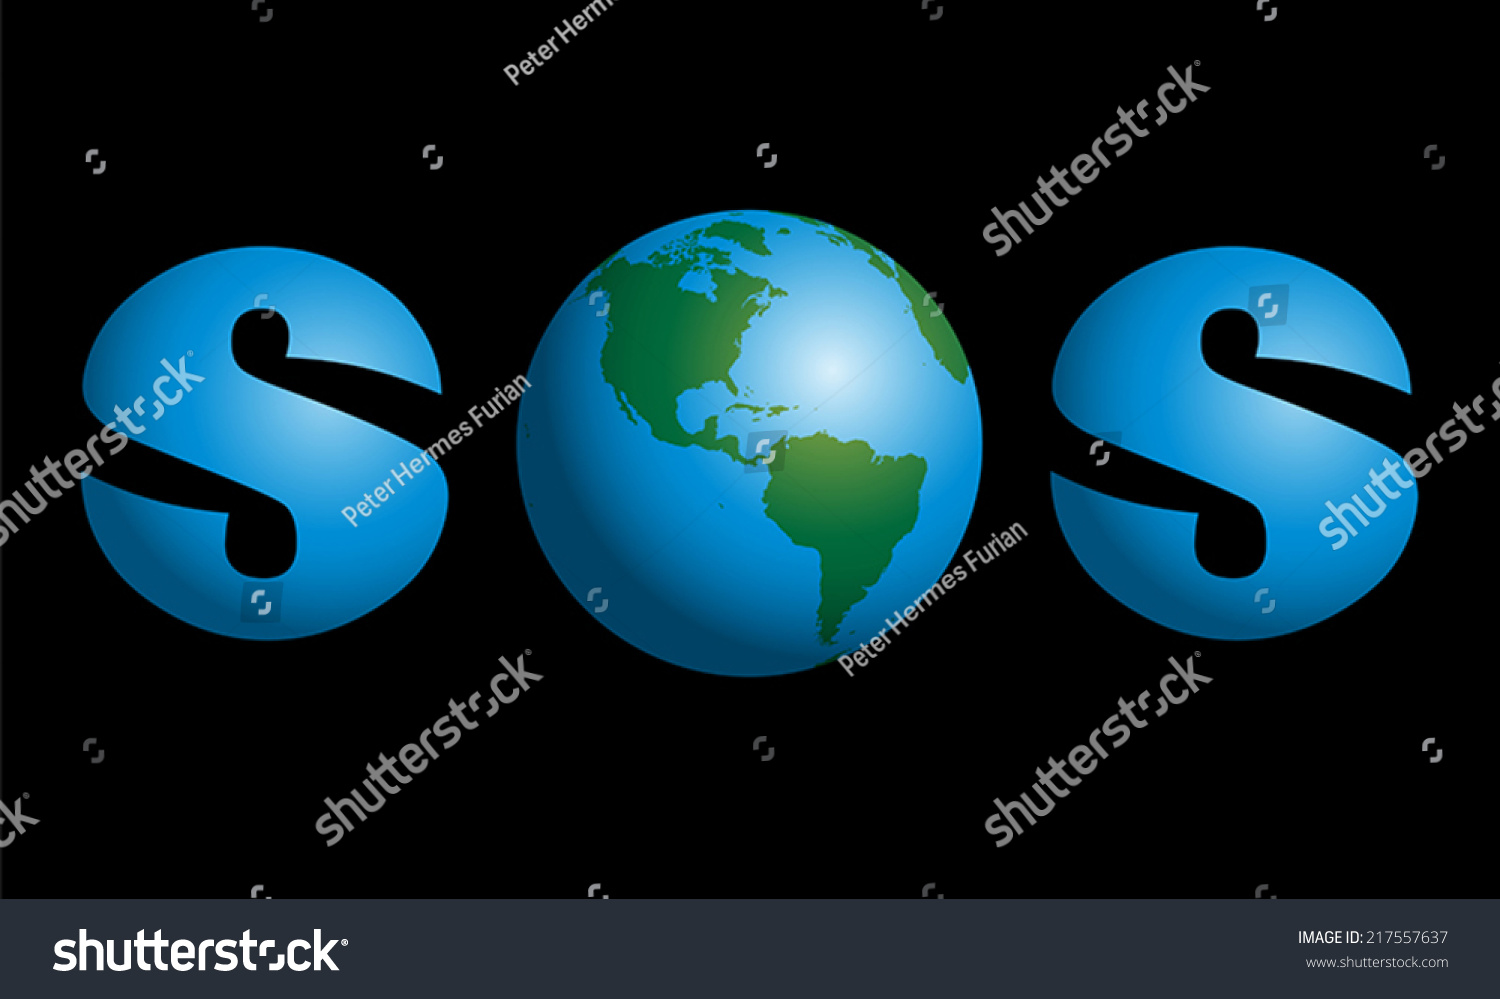 Sos planet earth middle symbol global stock vector 217557637 sos with planet earth in the middle as a symbol for global troubles like environmental buycottarizona